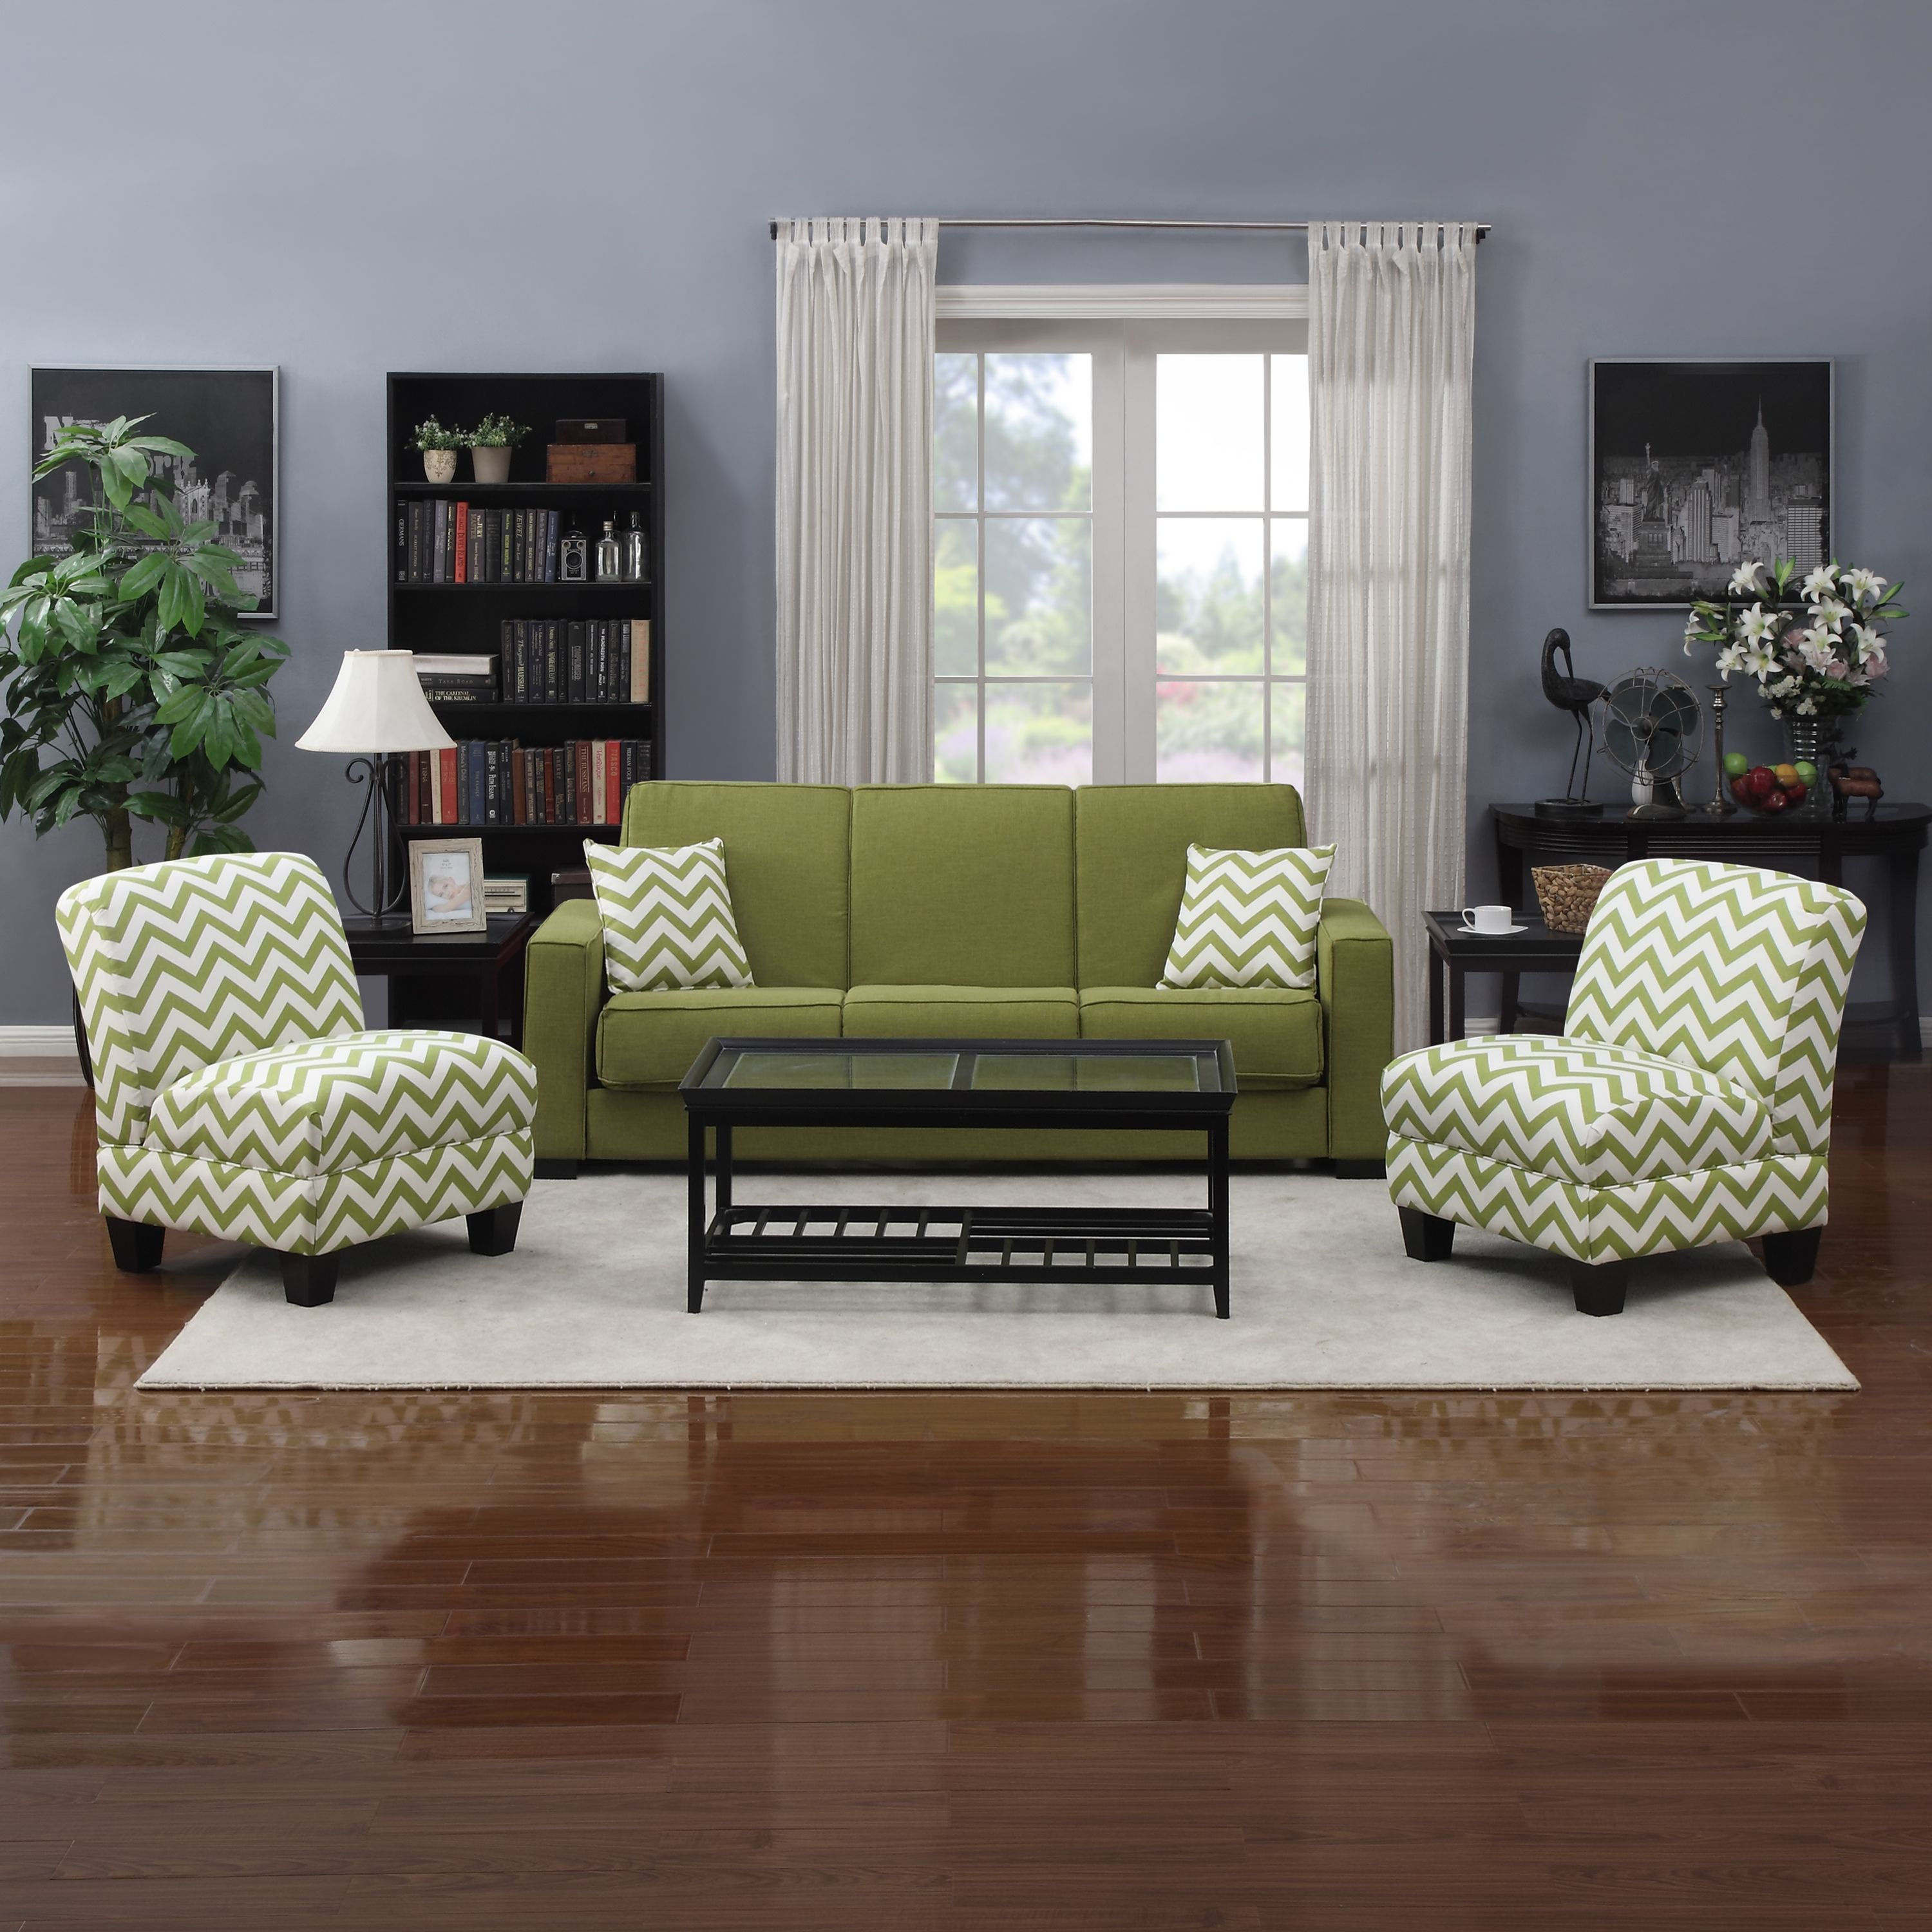 Living Room Sets Craigslist Futon Sofa Small Apartment Couch Living Room Wall Color